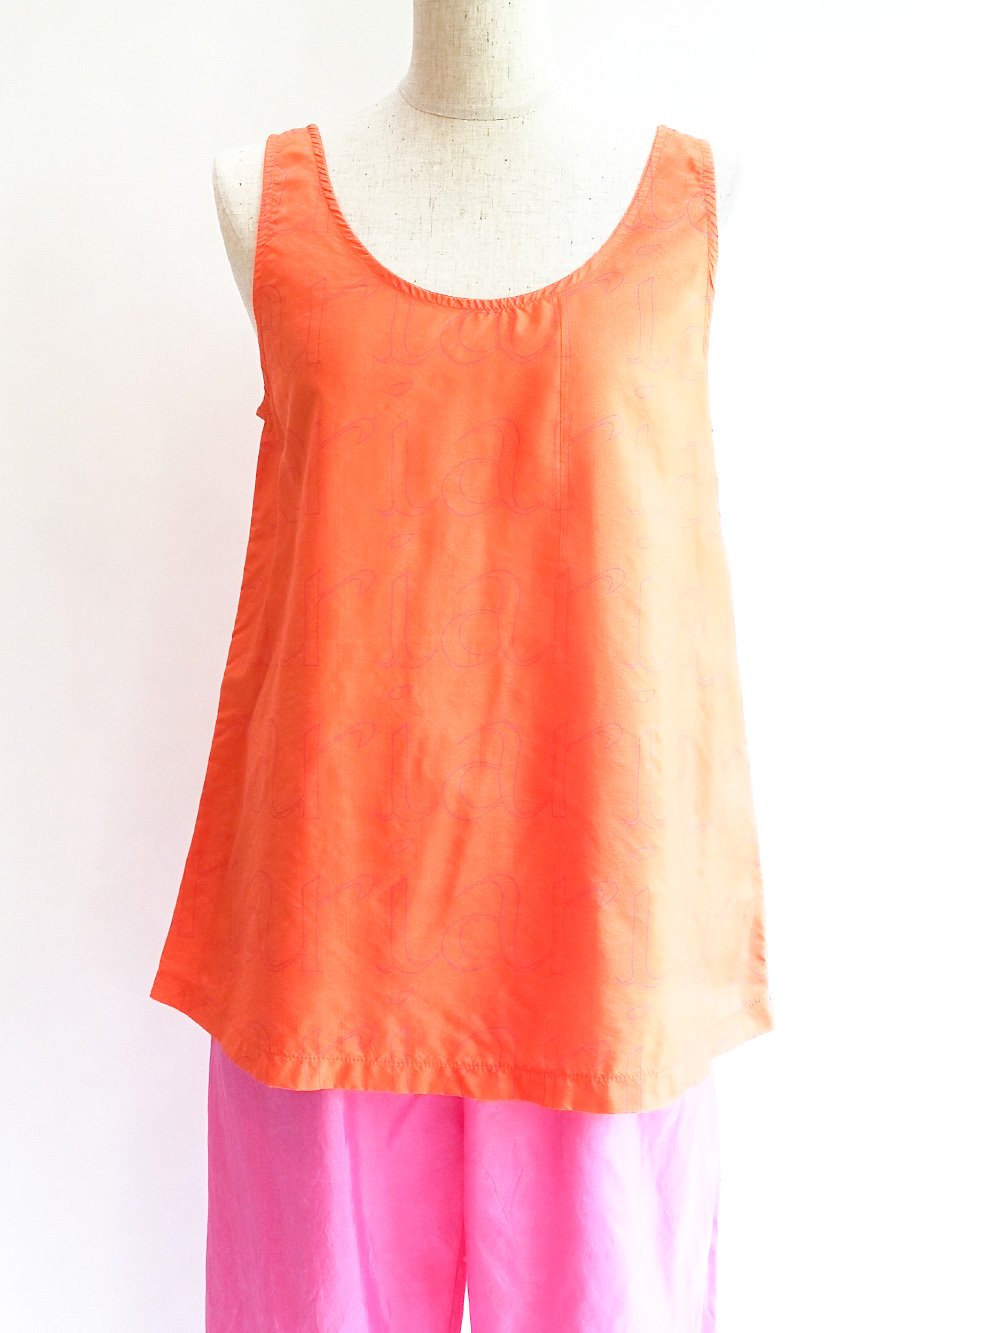 Tanktop / logo orange サムネイル